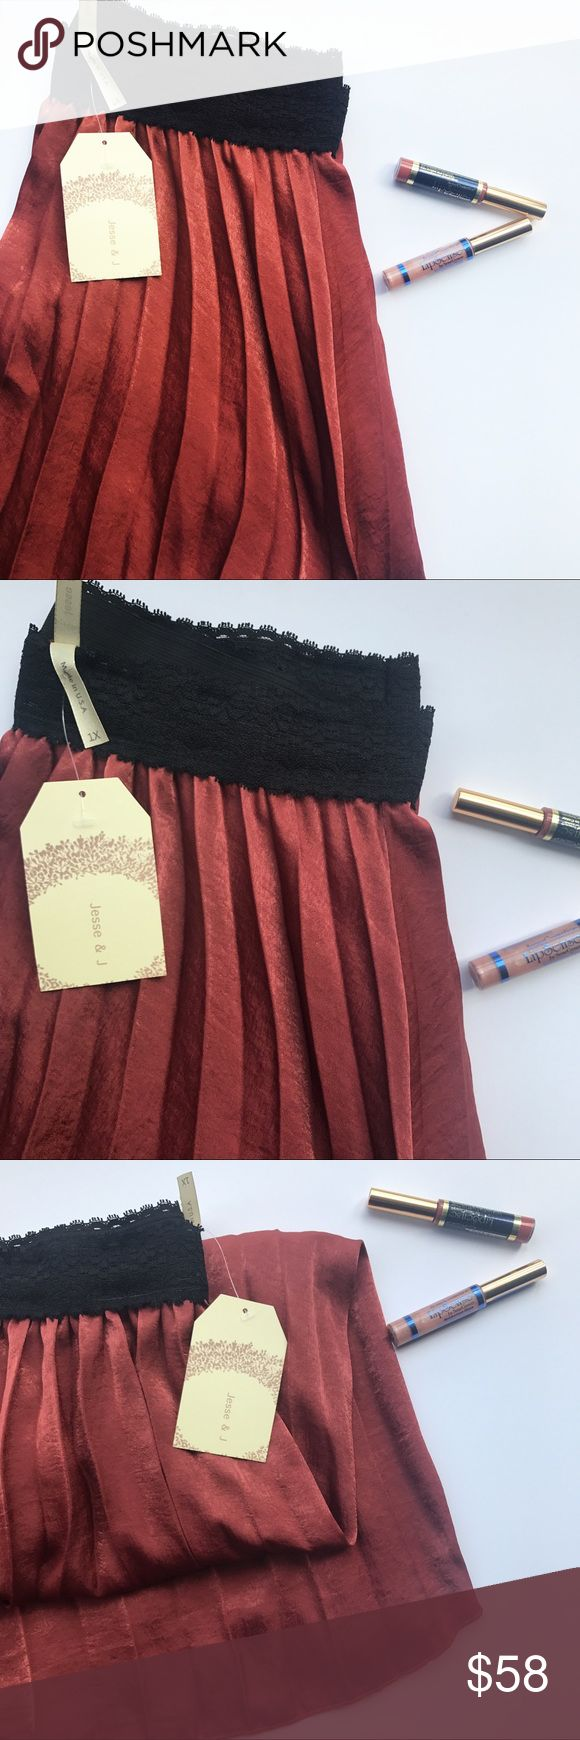 Sleek Rusty Orange Maxi Skirt STUNNING skirt • Soft Pleats • Silky smooth material • hits under the knee when worn as high waisted • Open to Reasonable offers • True to size Skirts Maxi